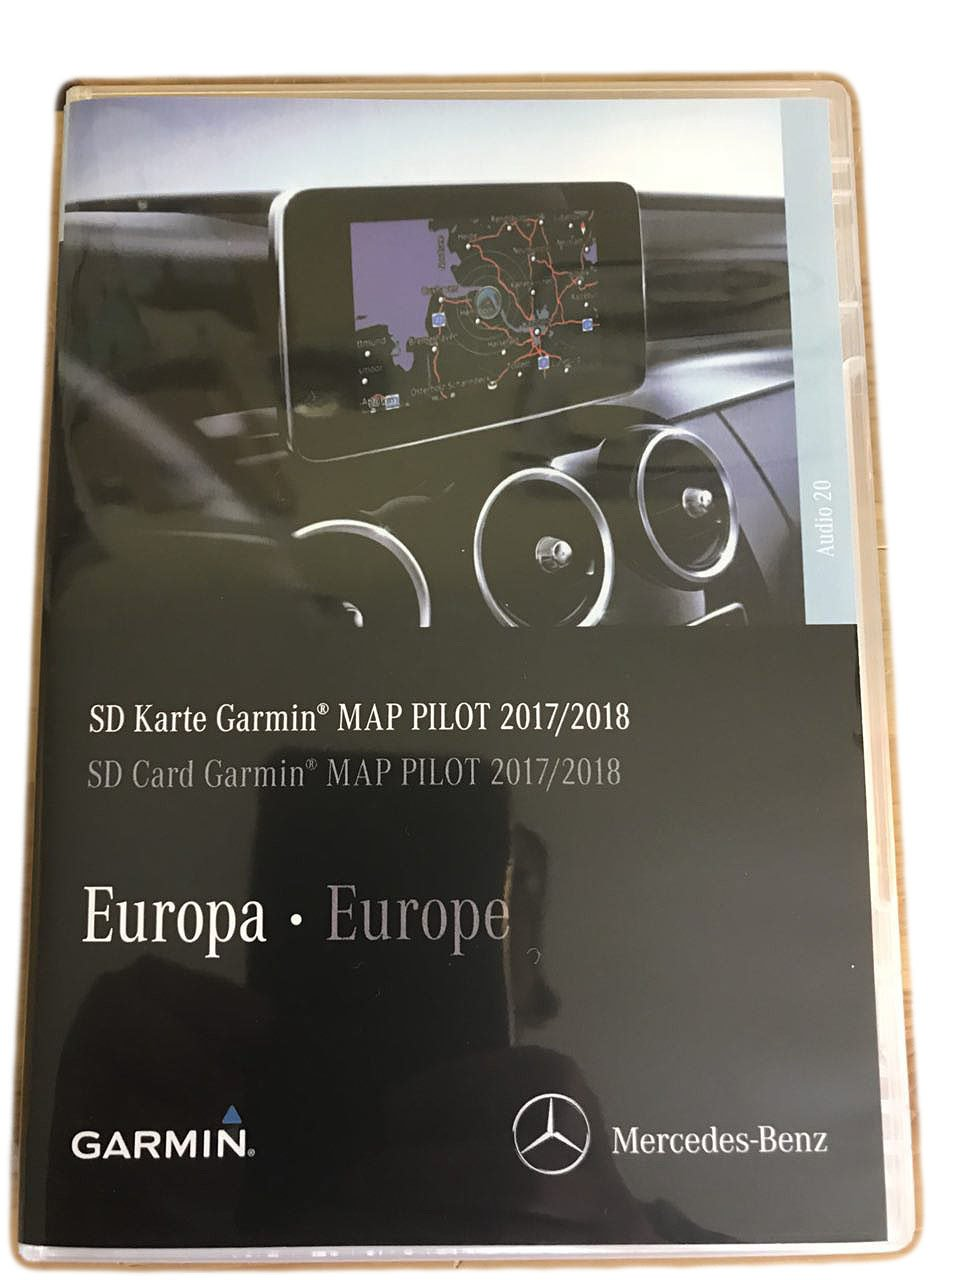 V9 Map 2017/2018 Map Pilot SD Card Audio 20 Touchpad - A2139069905 suwtec